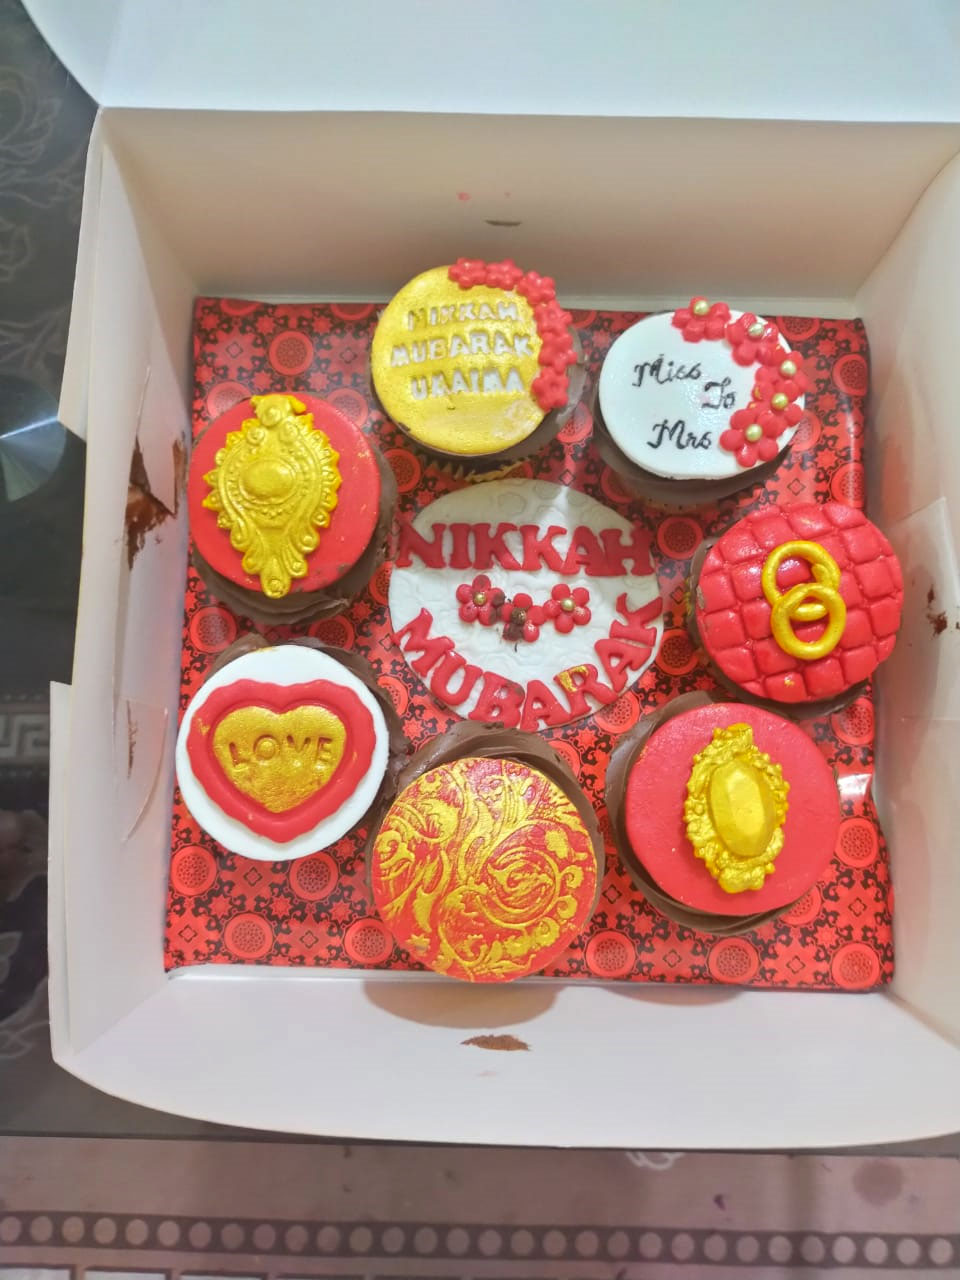 Nikkah Cupcakes gifted by Chachi